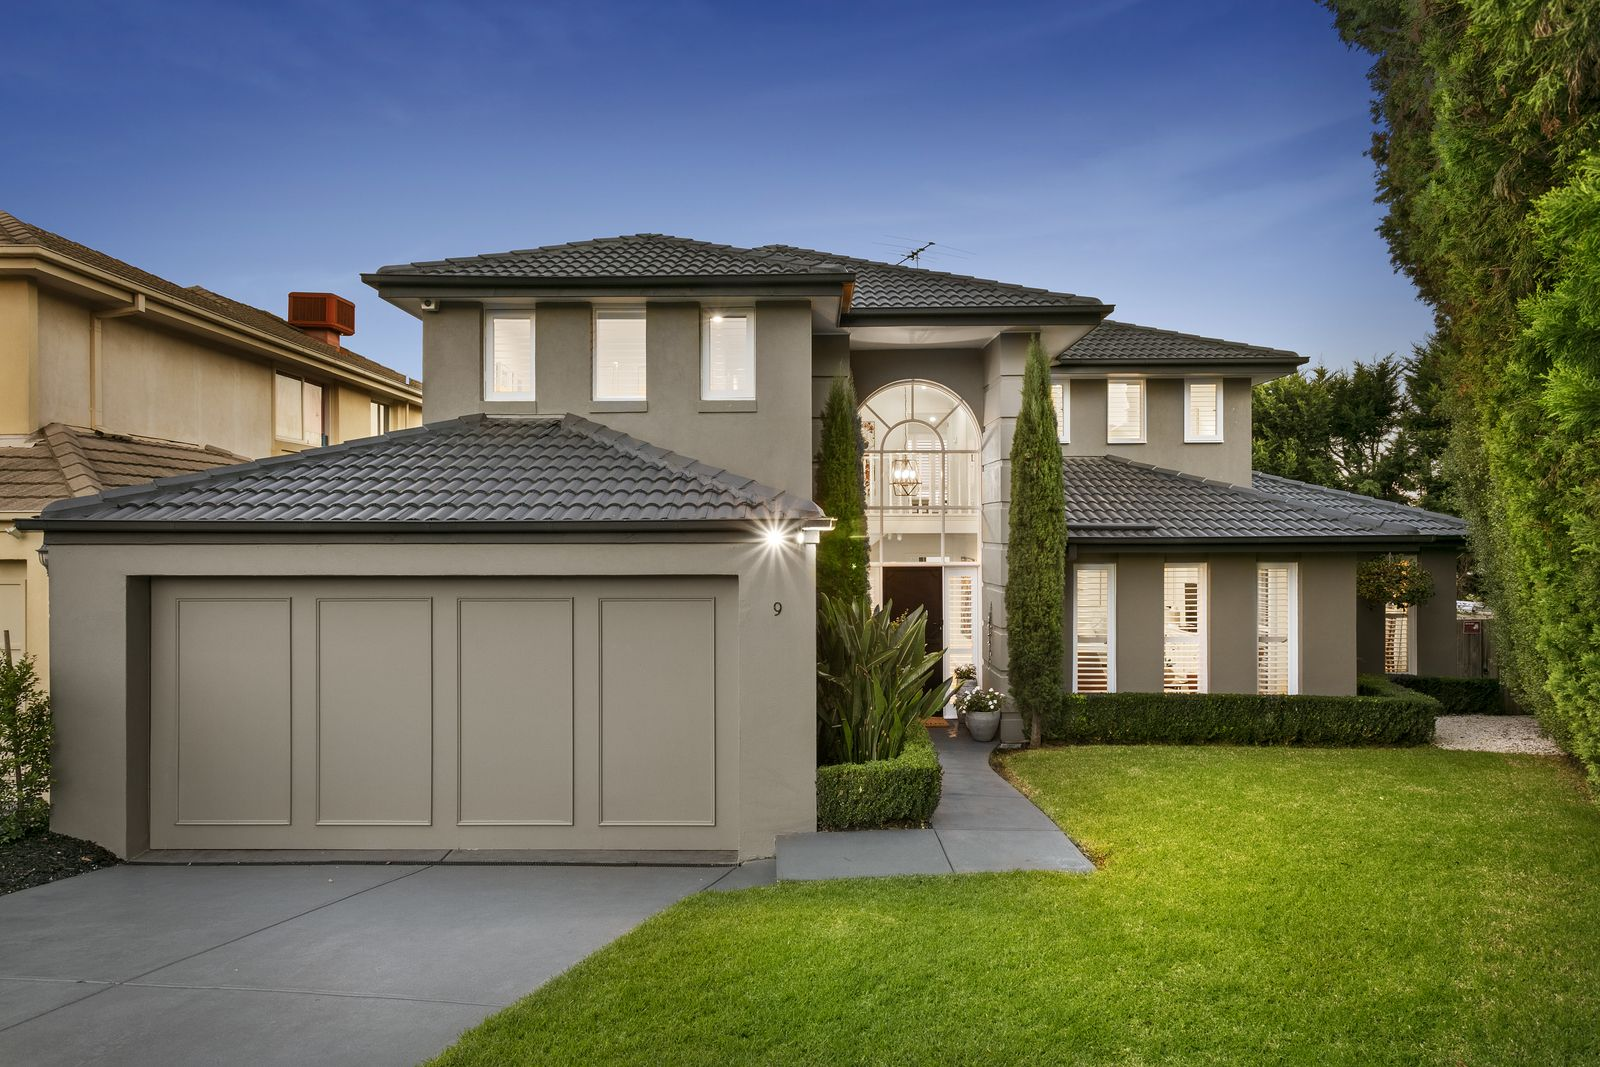 9 Wynnewood Court, Templestowe VIC 3106, Image 0